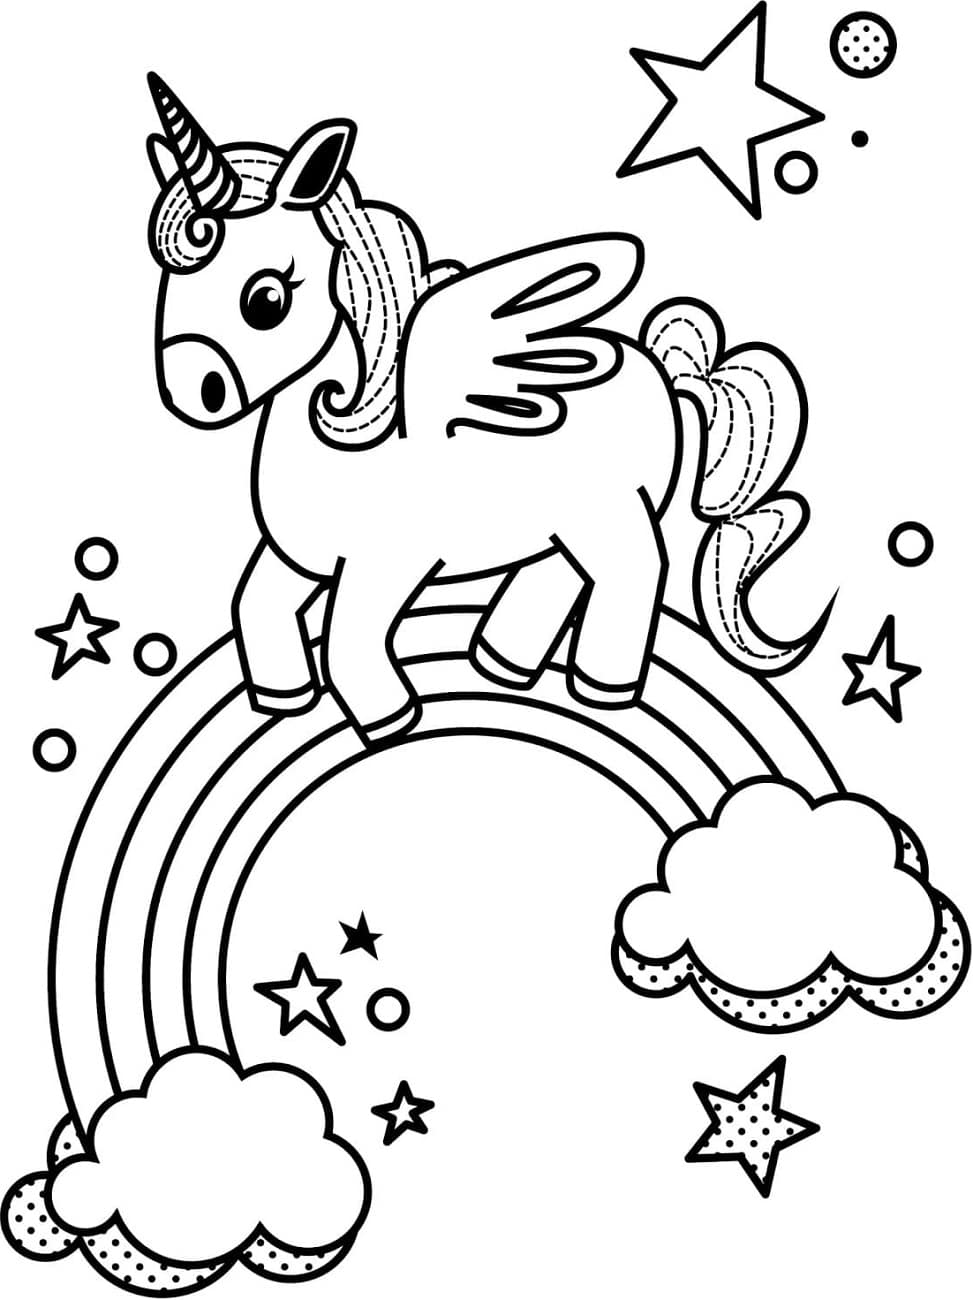 coloring picture unicorn unicorn coloring page for kids stock illustration picture coloring unicorn